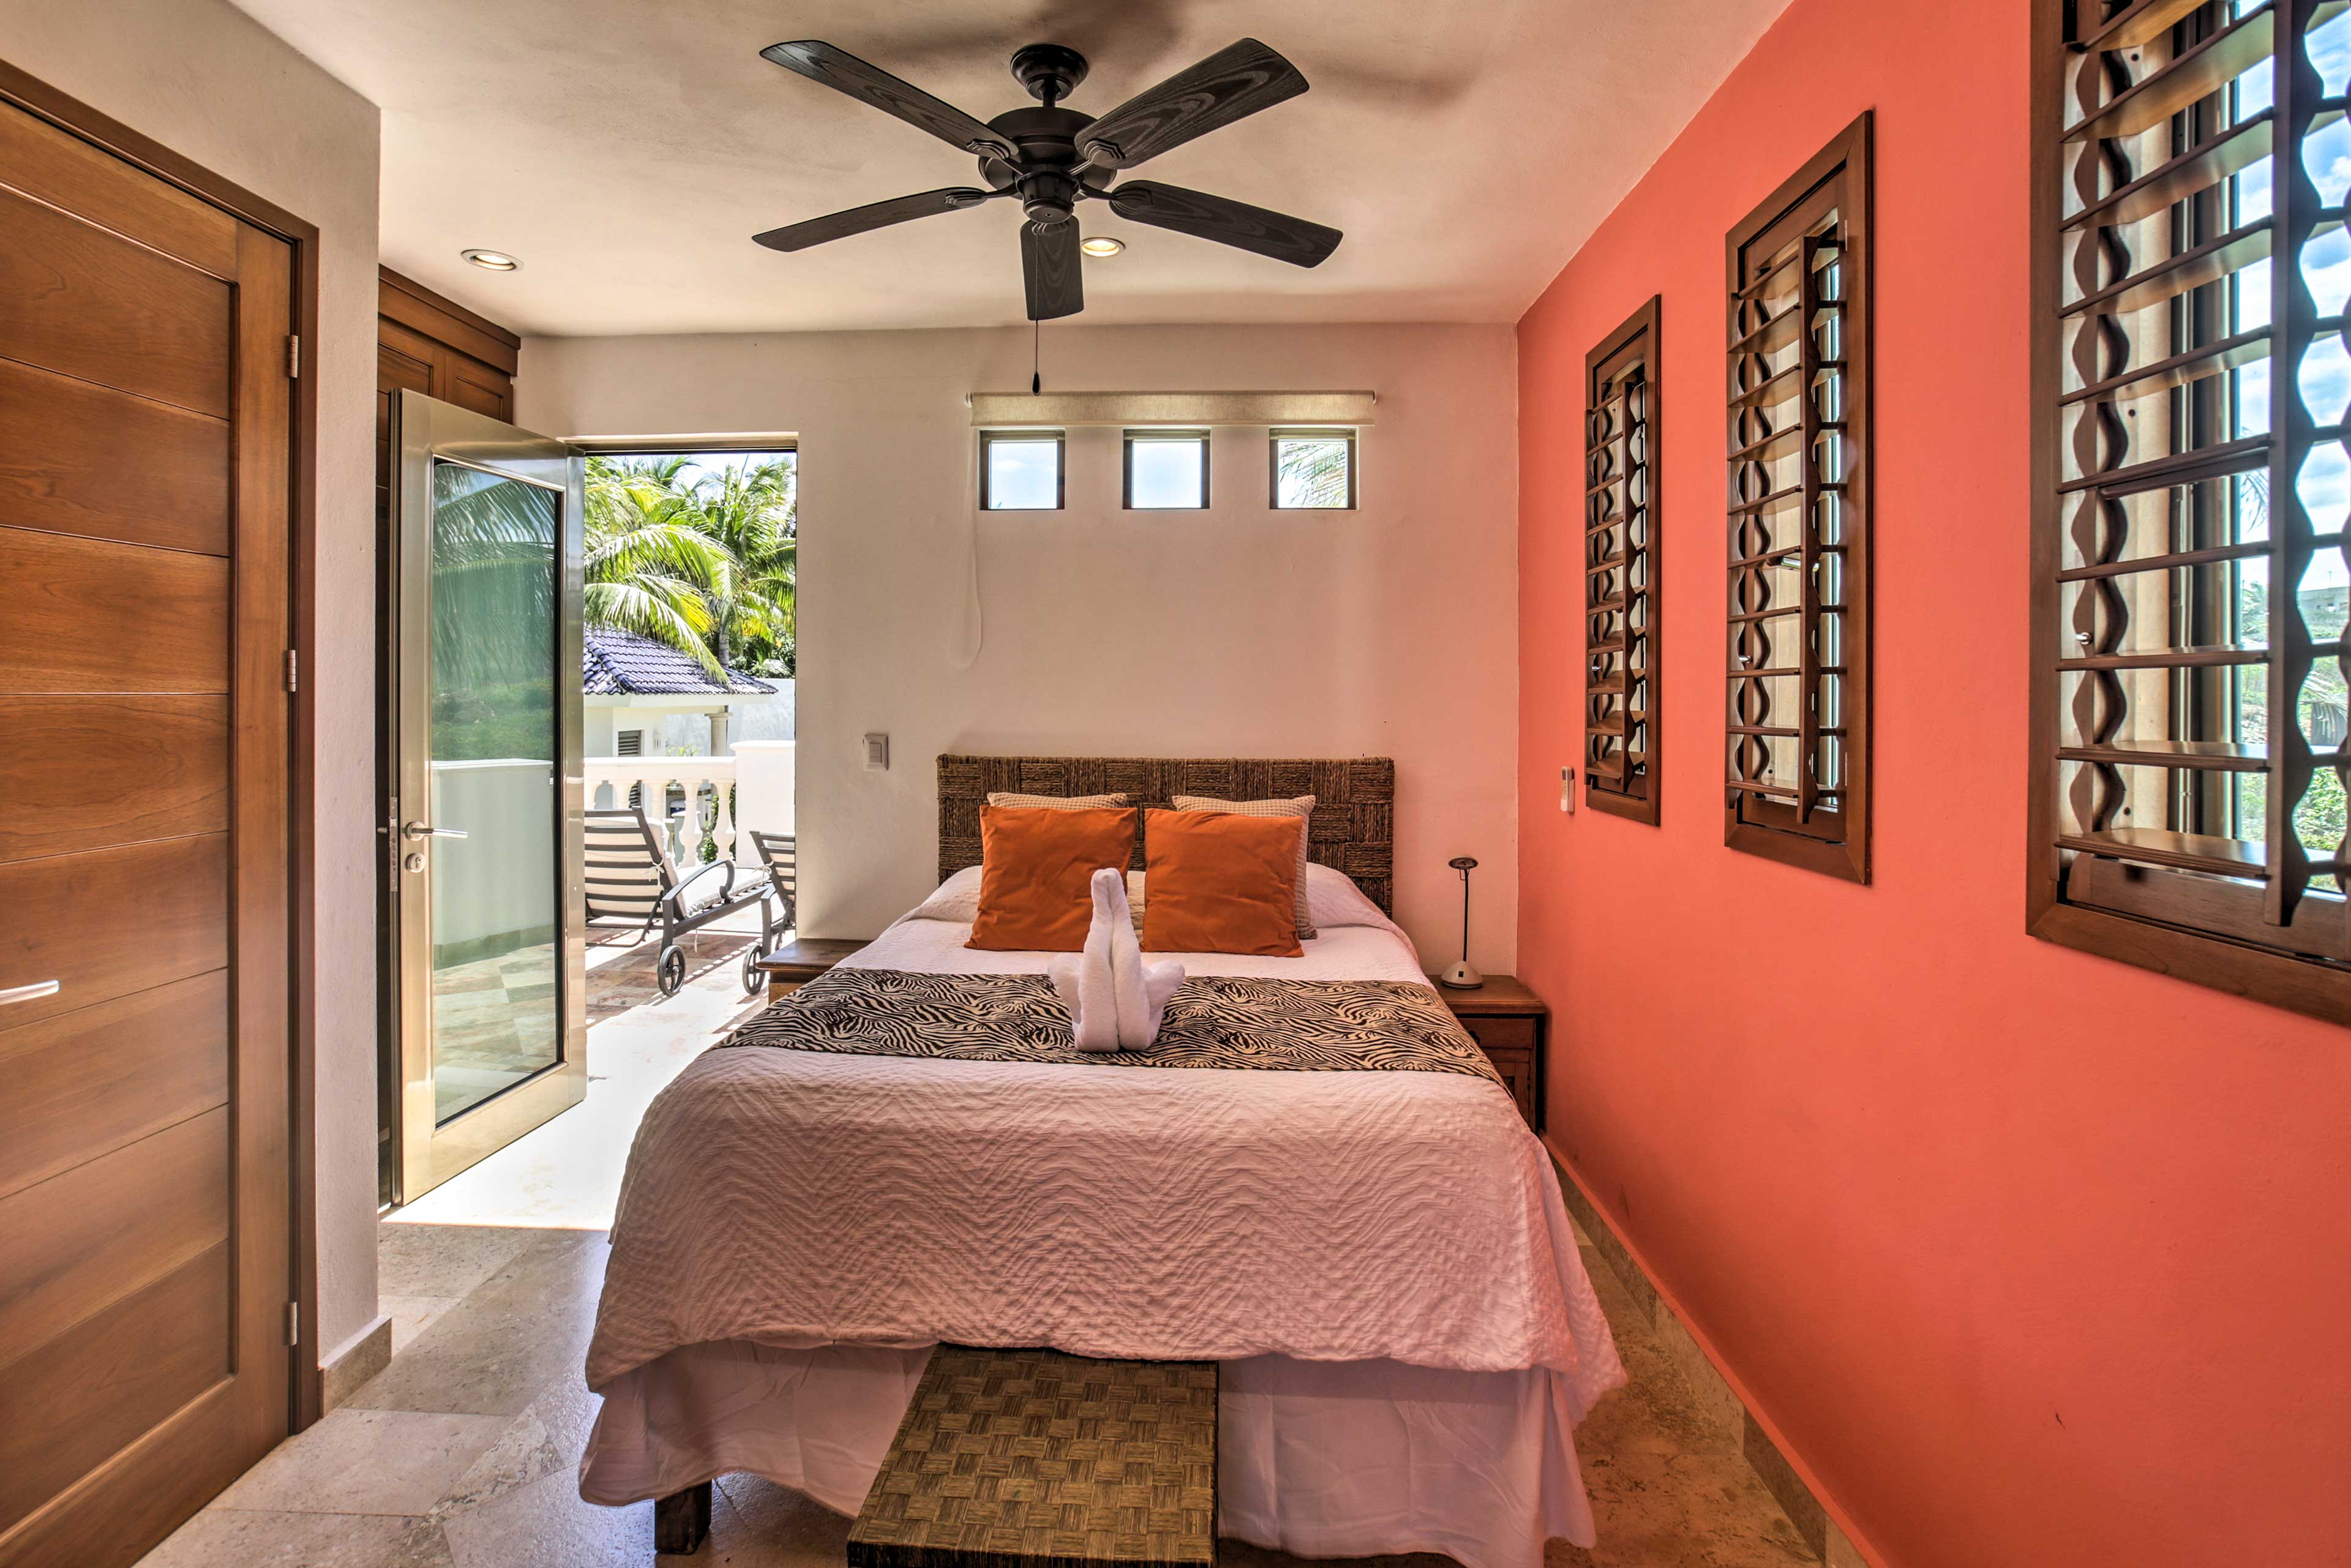 This bedroom has direct access to the pool.